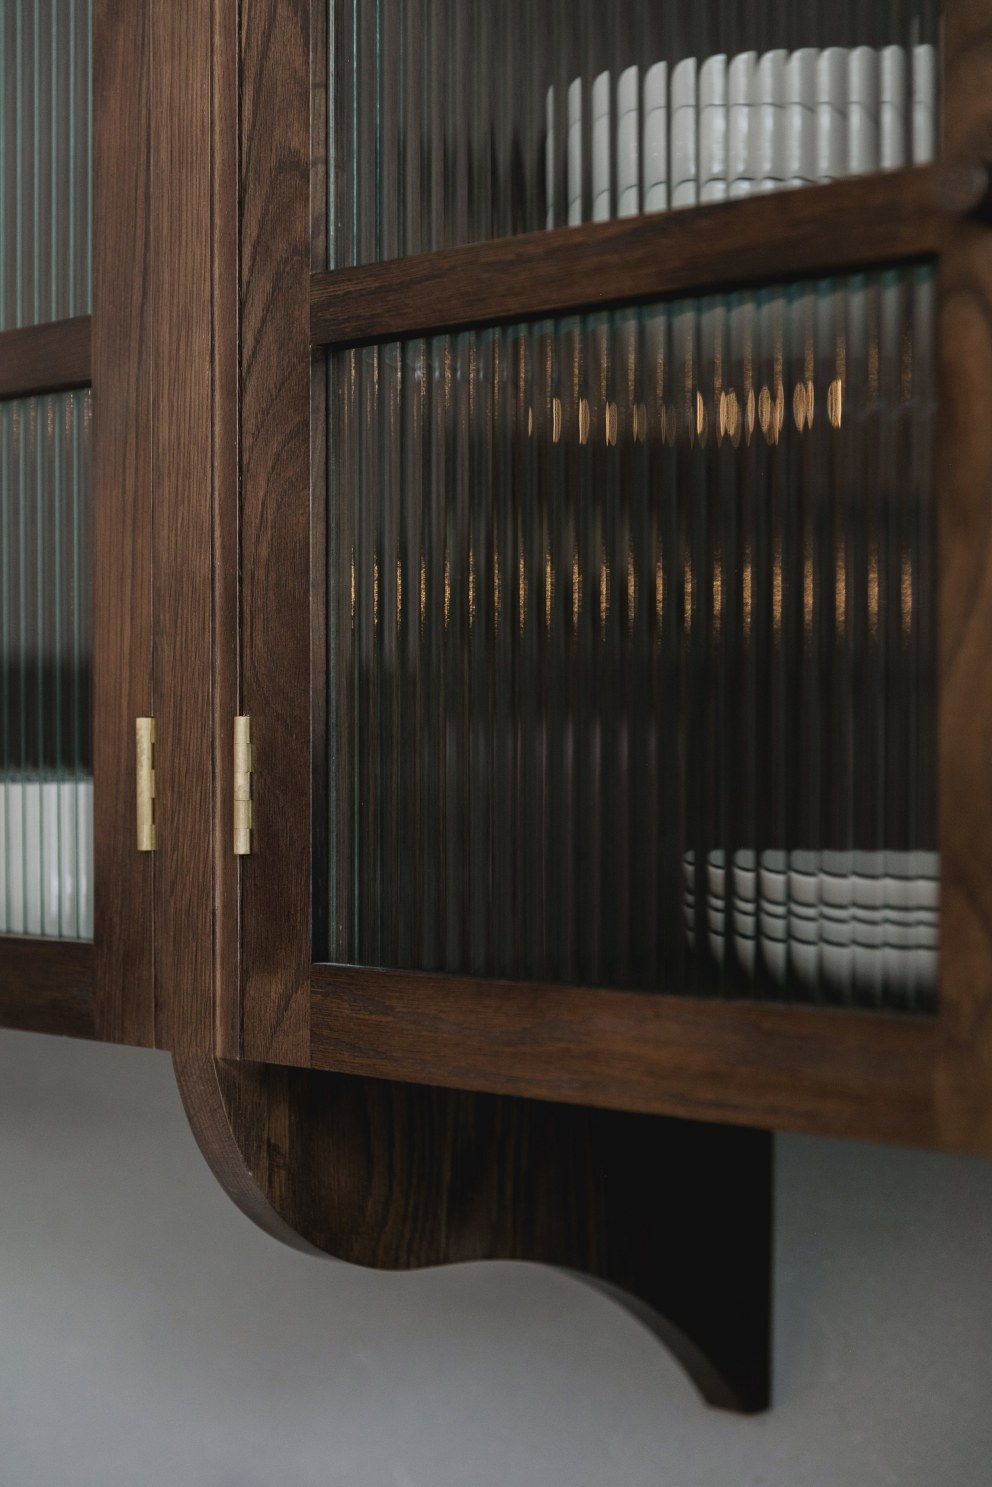 North London  | Kitchen cabinetry detail  | Interior Designers